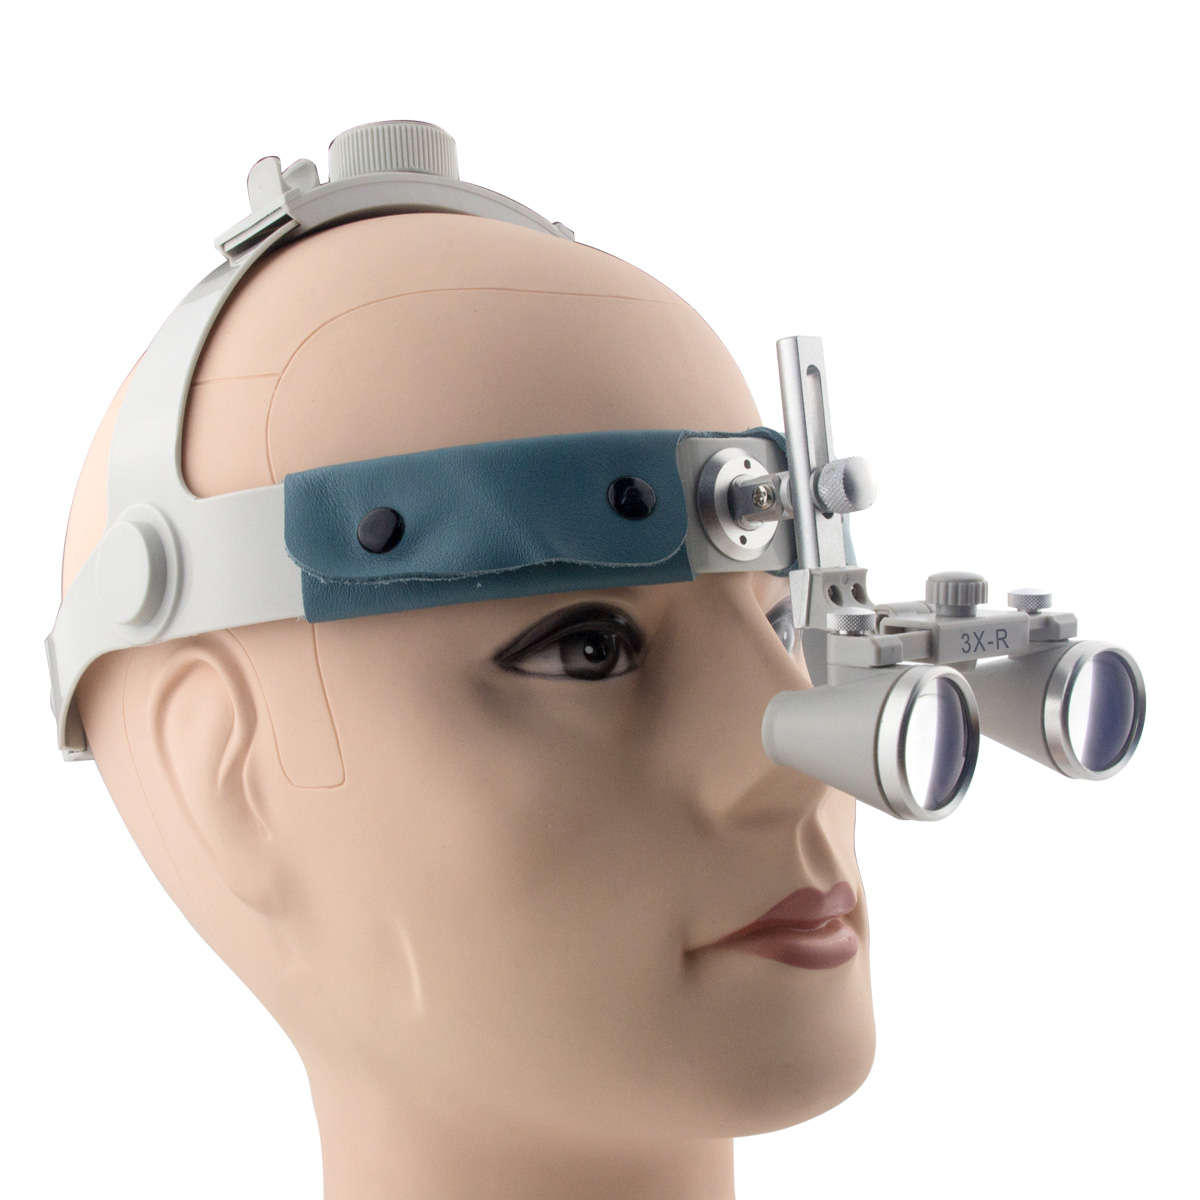 Spark 3.0x Magnification Professional Loupes with Comfortable Headband and Mounted LED Head Light forSurgical, Jeweler, or Hobby  spark 2 5x magnification dentist surgical medical binocular dental loupes with comfortable headband and mounted led head light